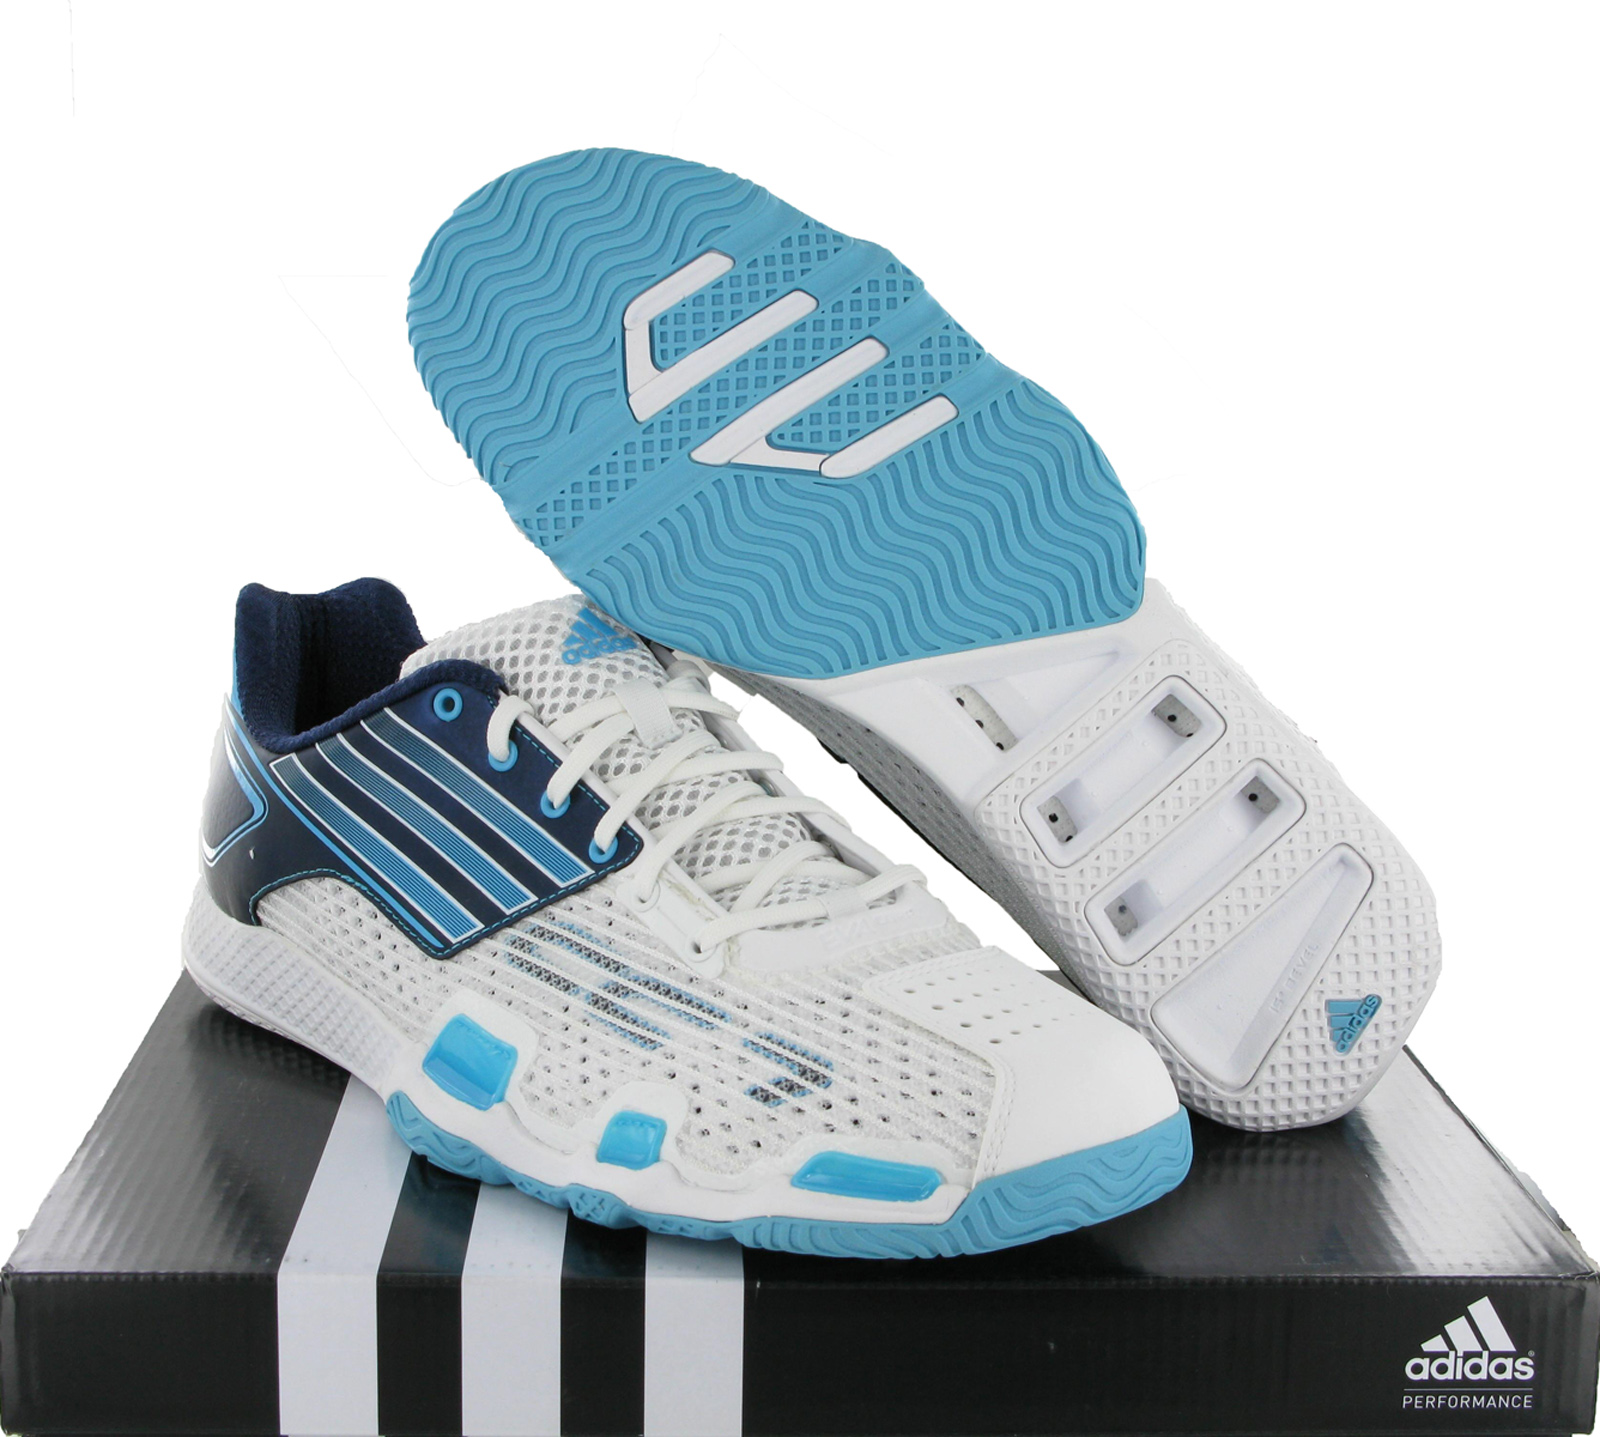 New-Mens-Adidas-Adizero-HB-CC7-White-Running-Sport-Shoes-Trainers-Size-6-12-UK